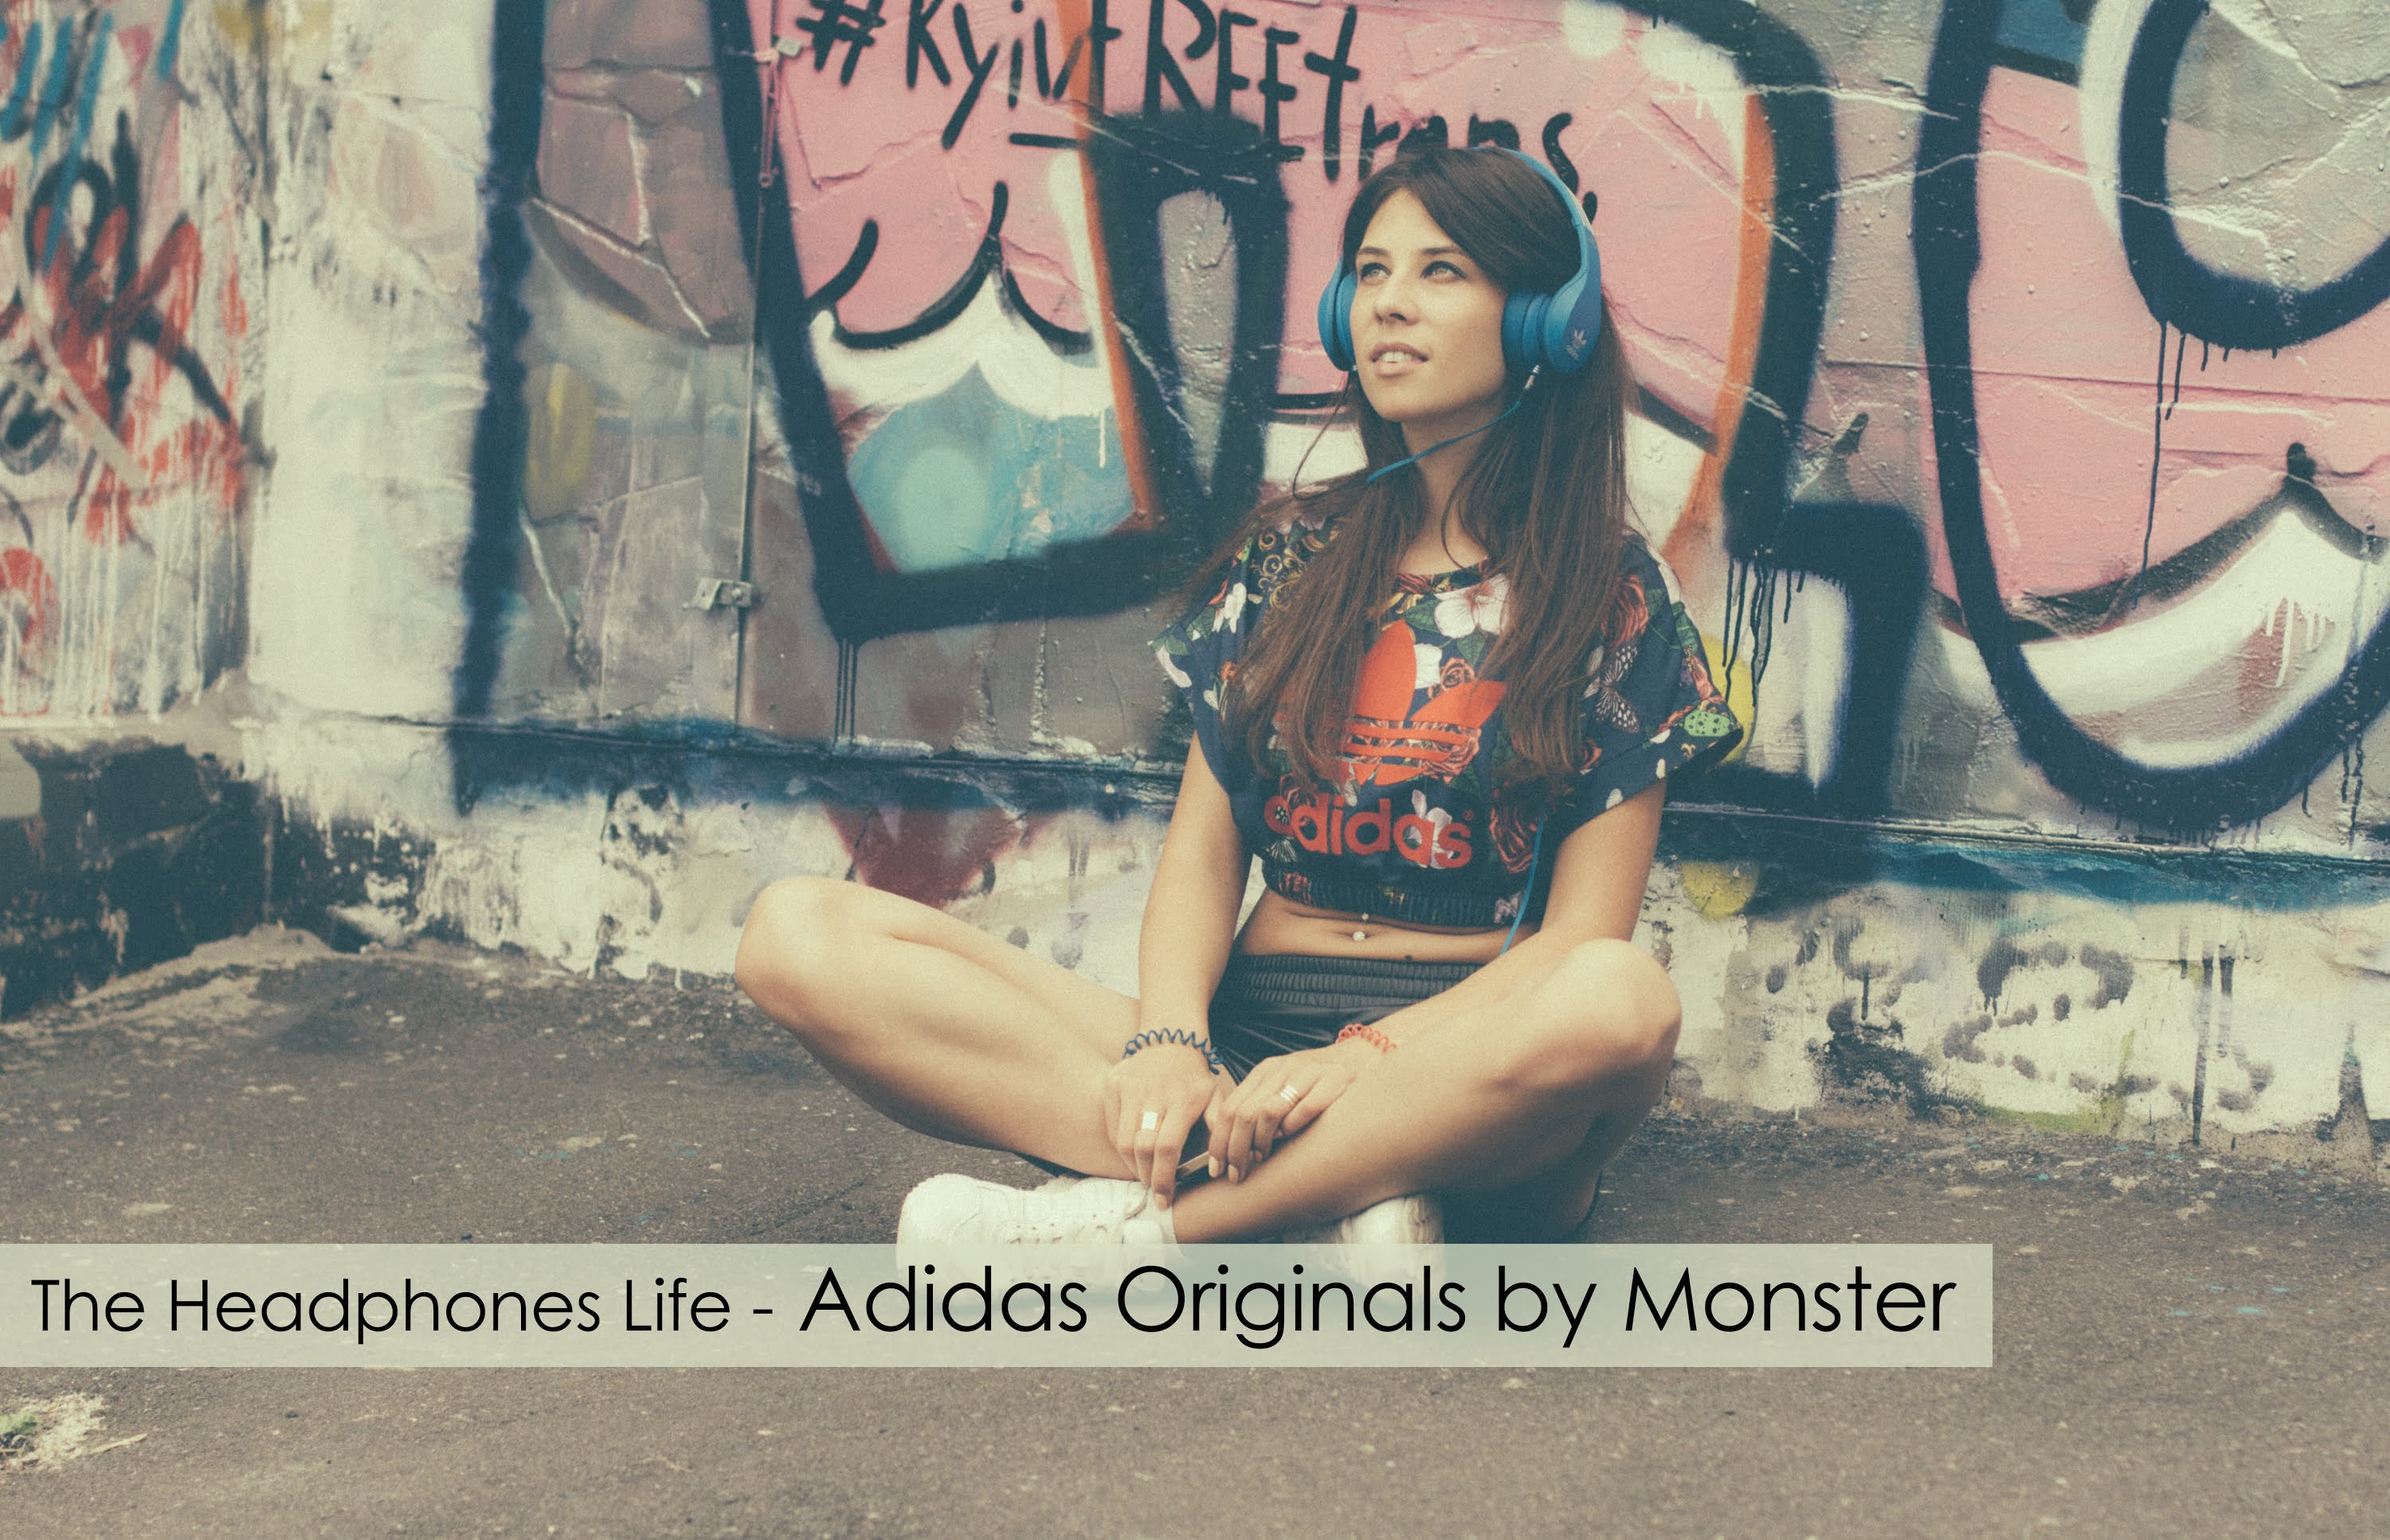 ADIDAS ORIGINALS X MONSTER (1)